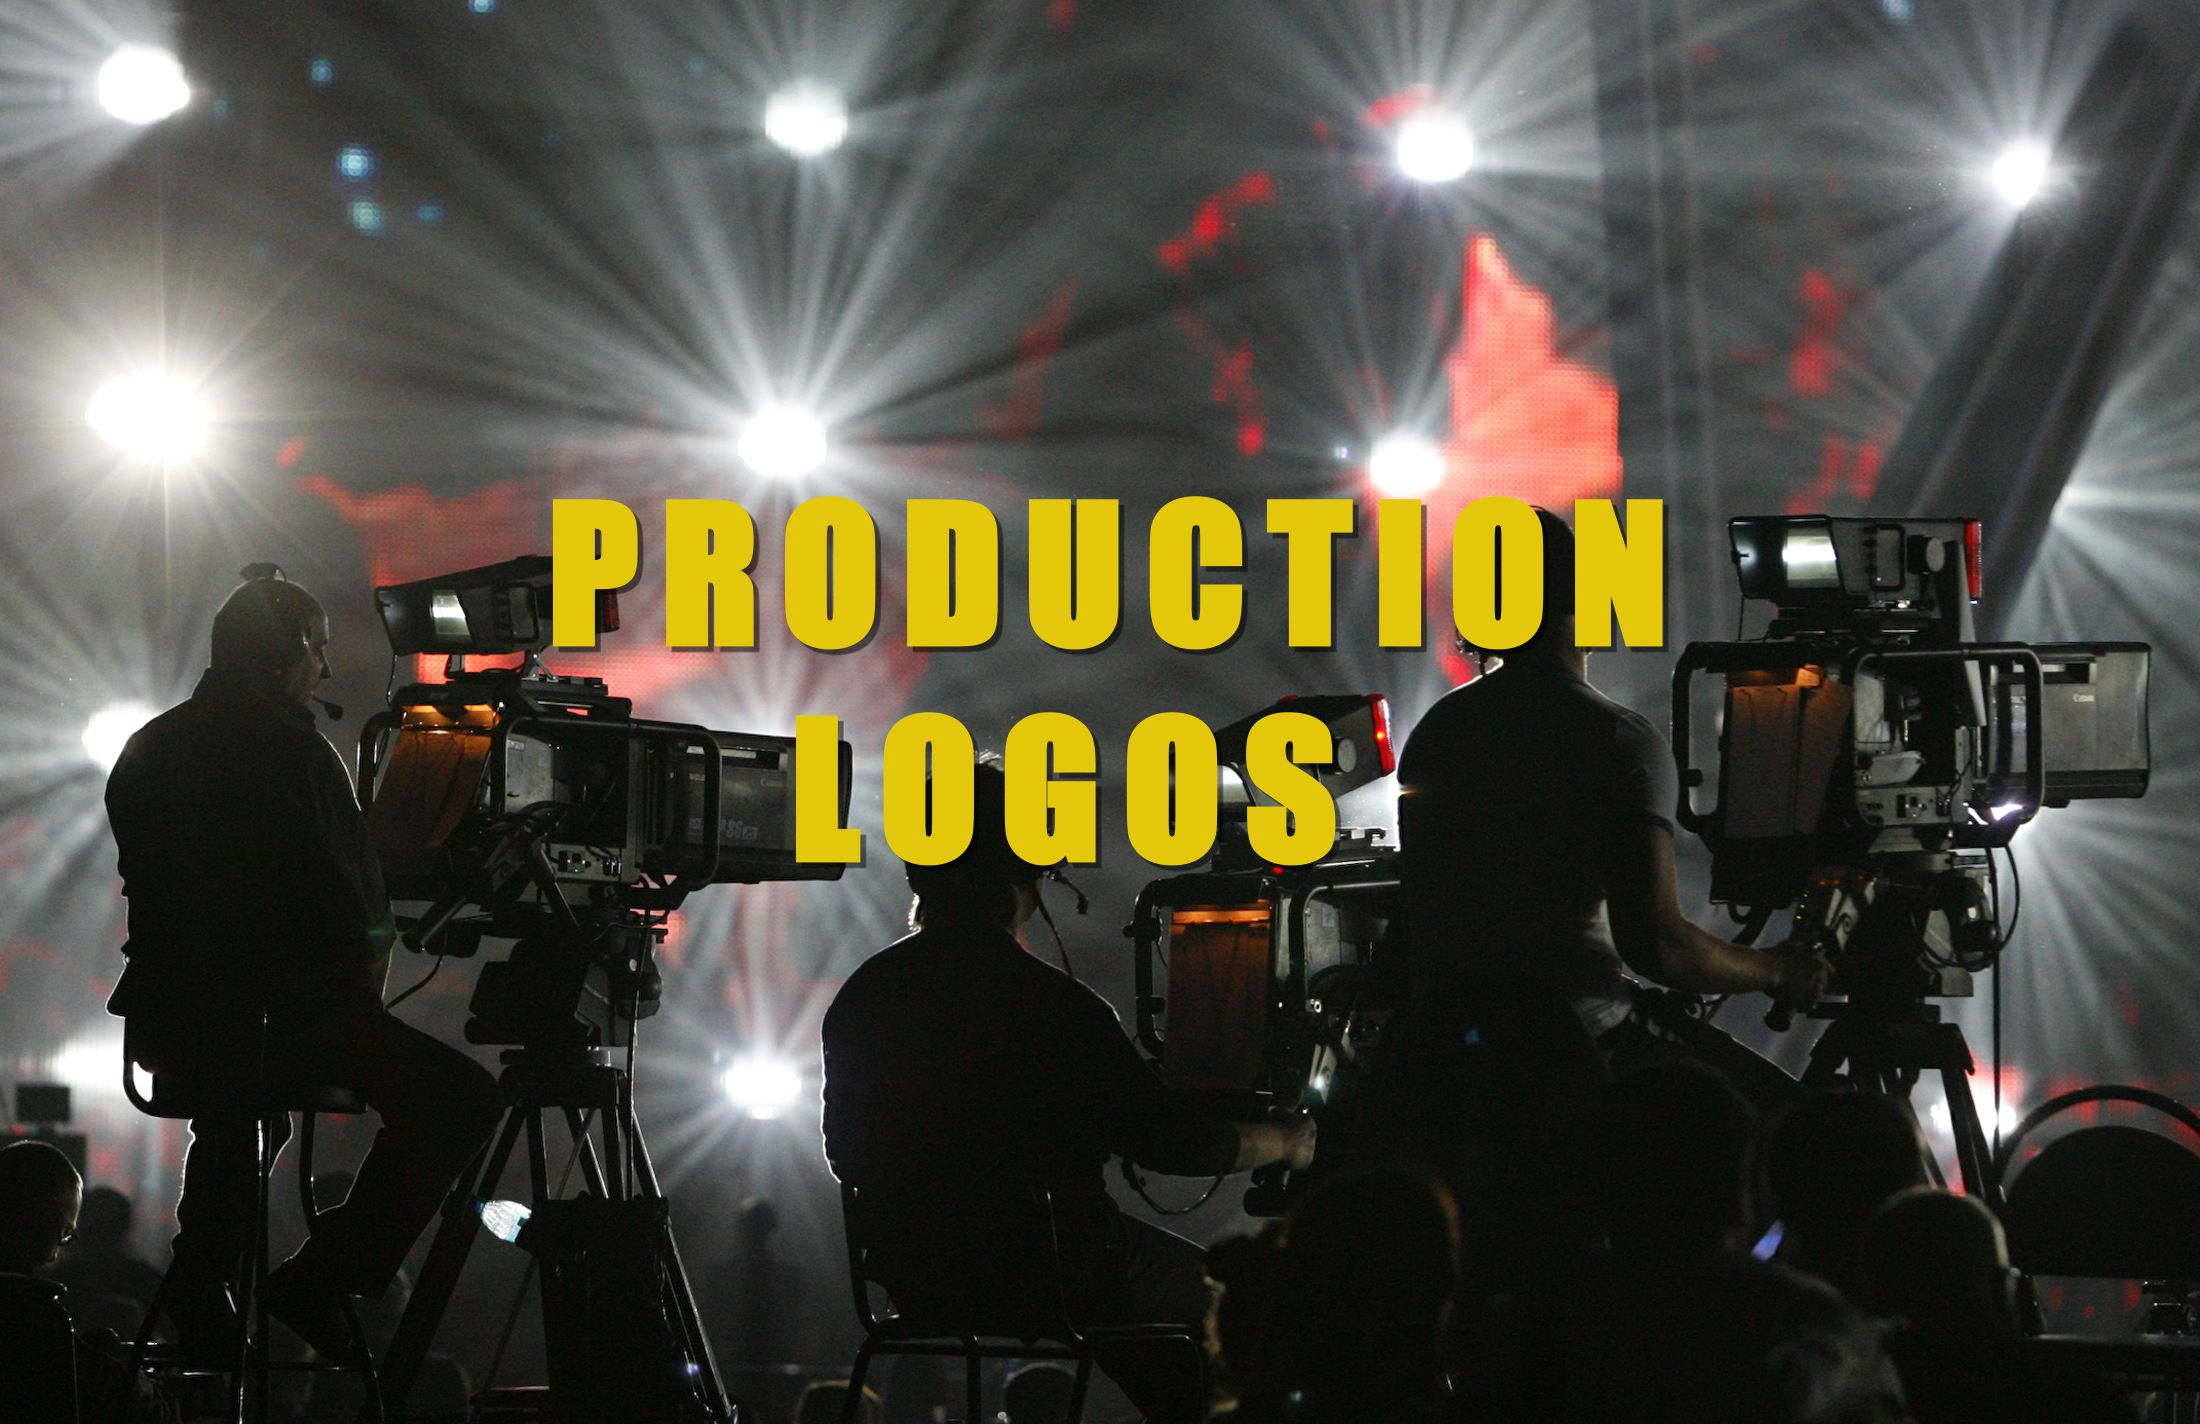 Production Logos